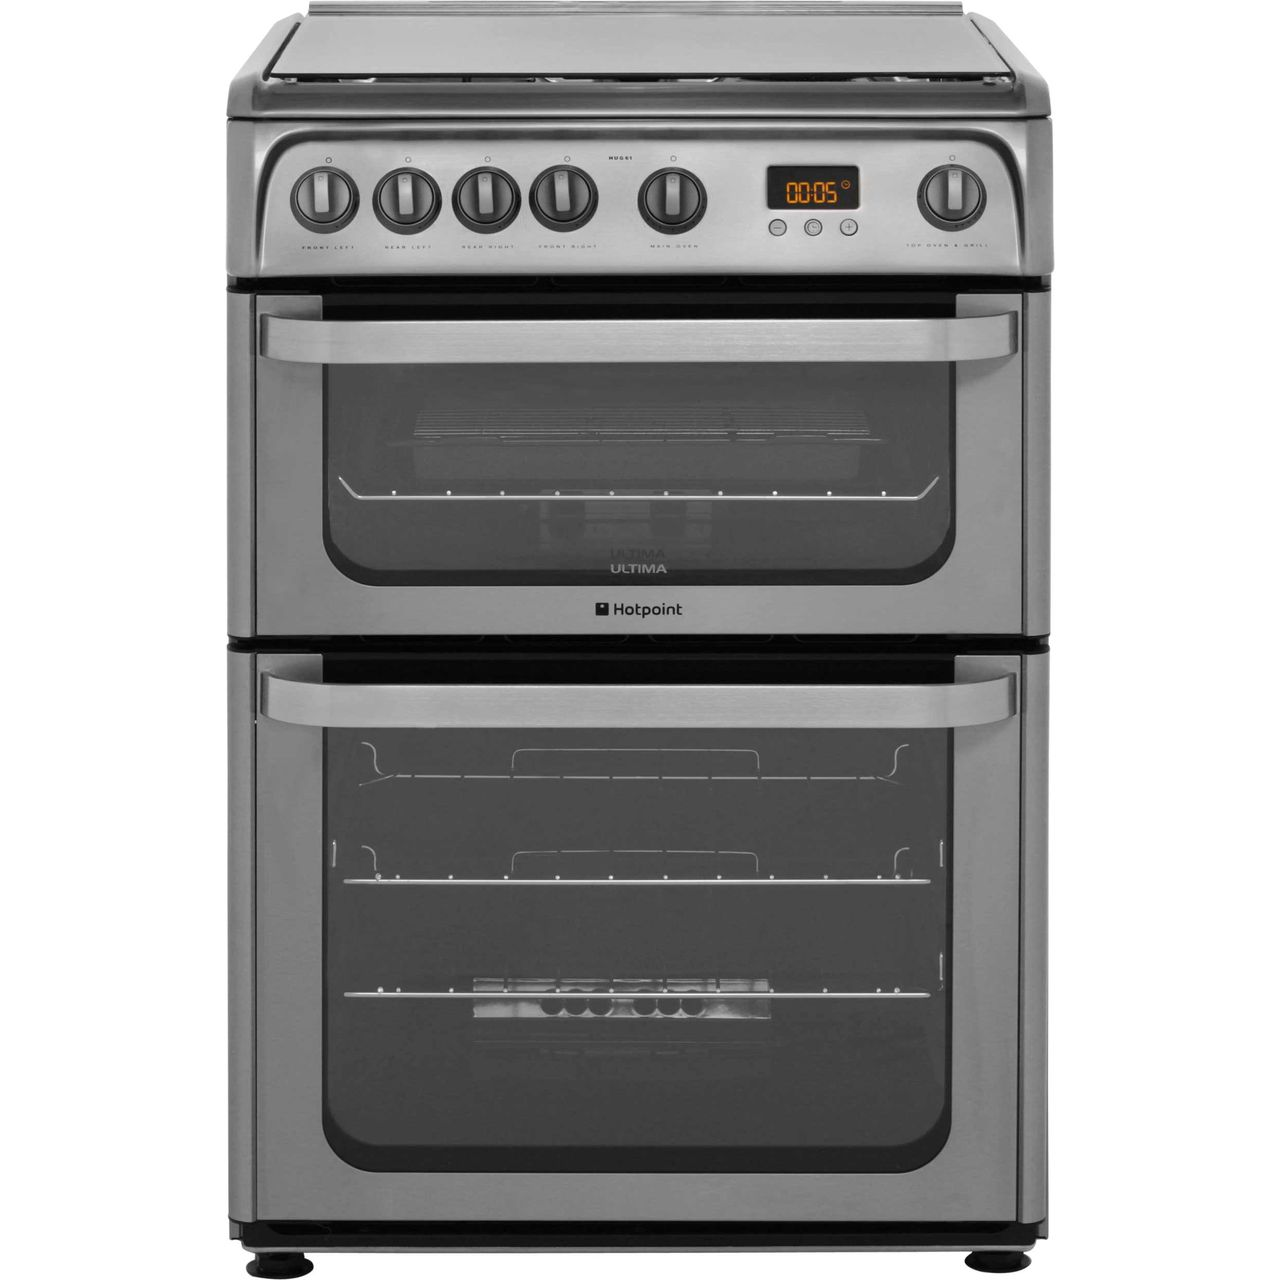 kitchen appliances pay monthly how much to reface cabinets hug61x ss hotpoint gas cooker stainless steel ao